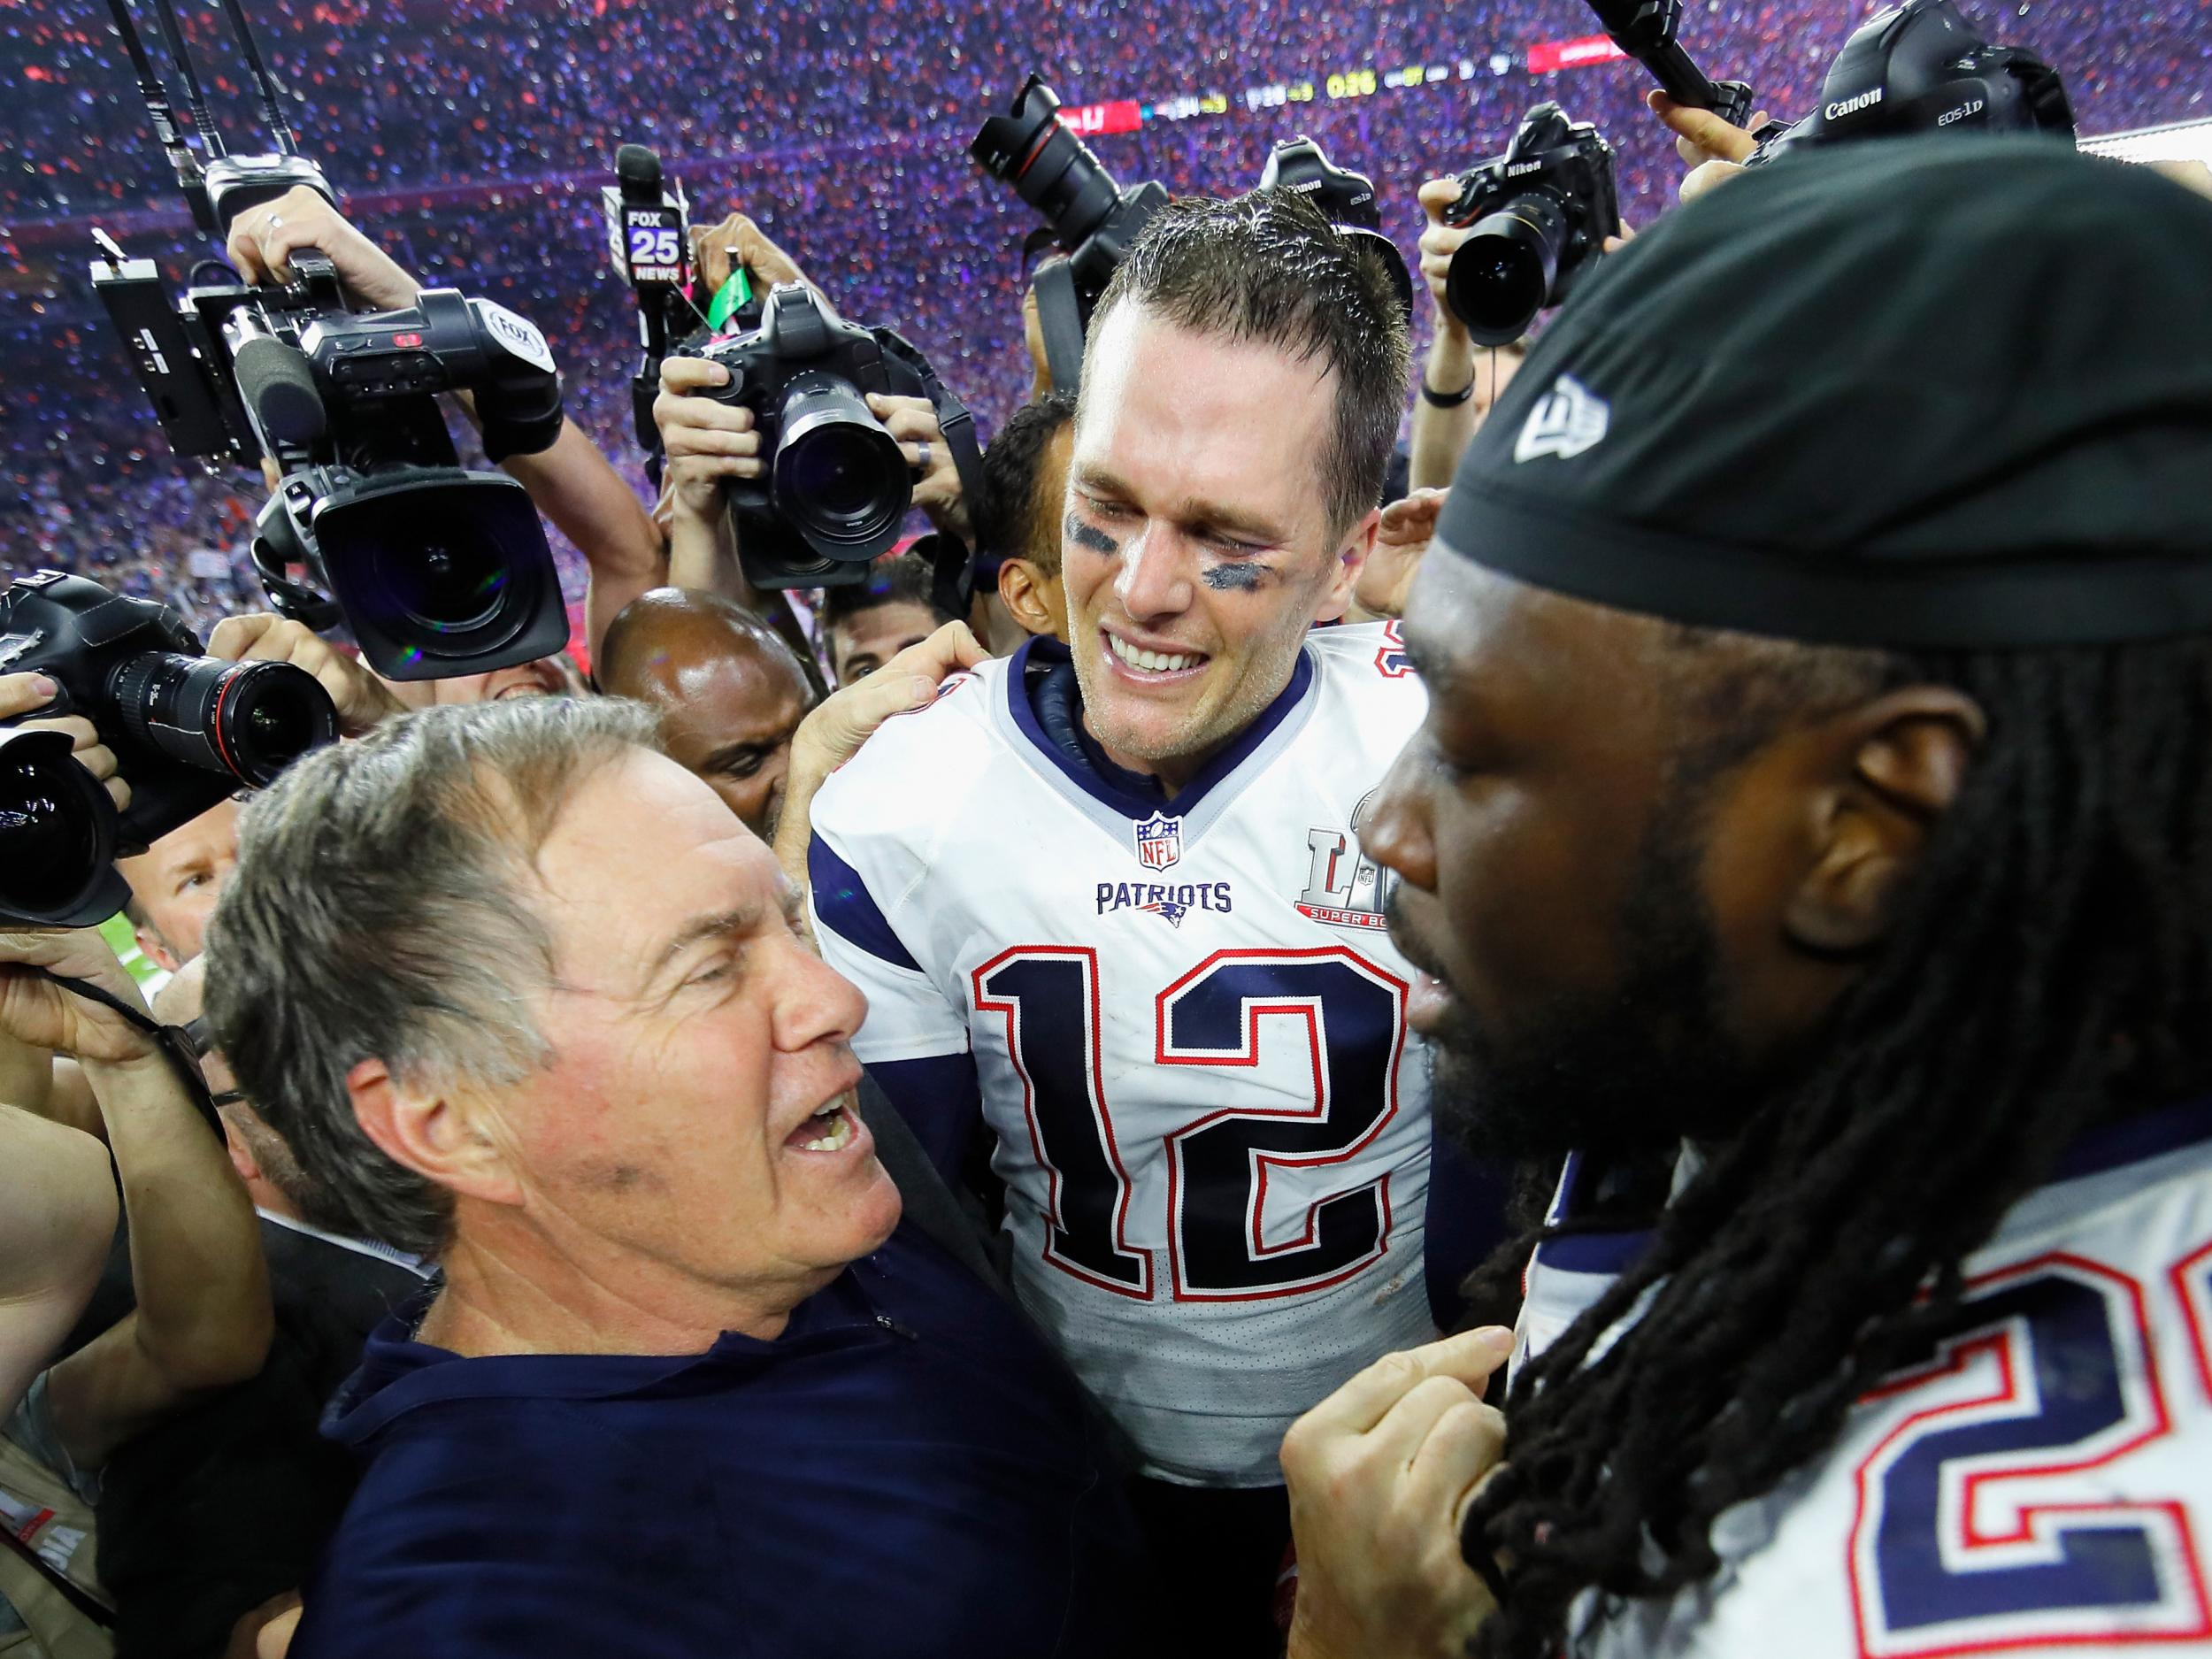 f0b3a57da2ed83 Tom Brady, Bill Belichick, the New England Patriots and Super Bowl 51 have  all secured their places in history